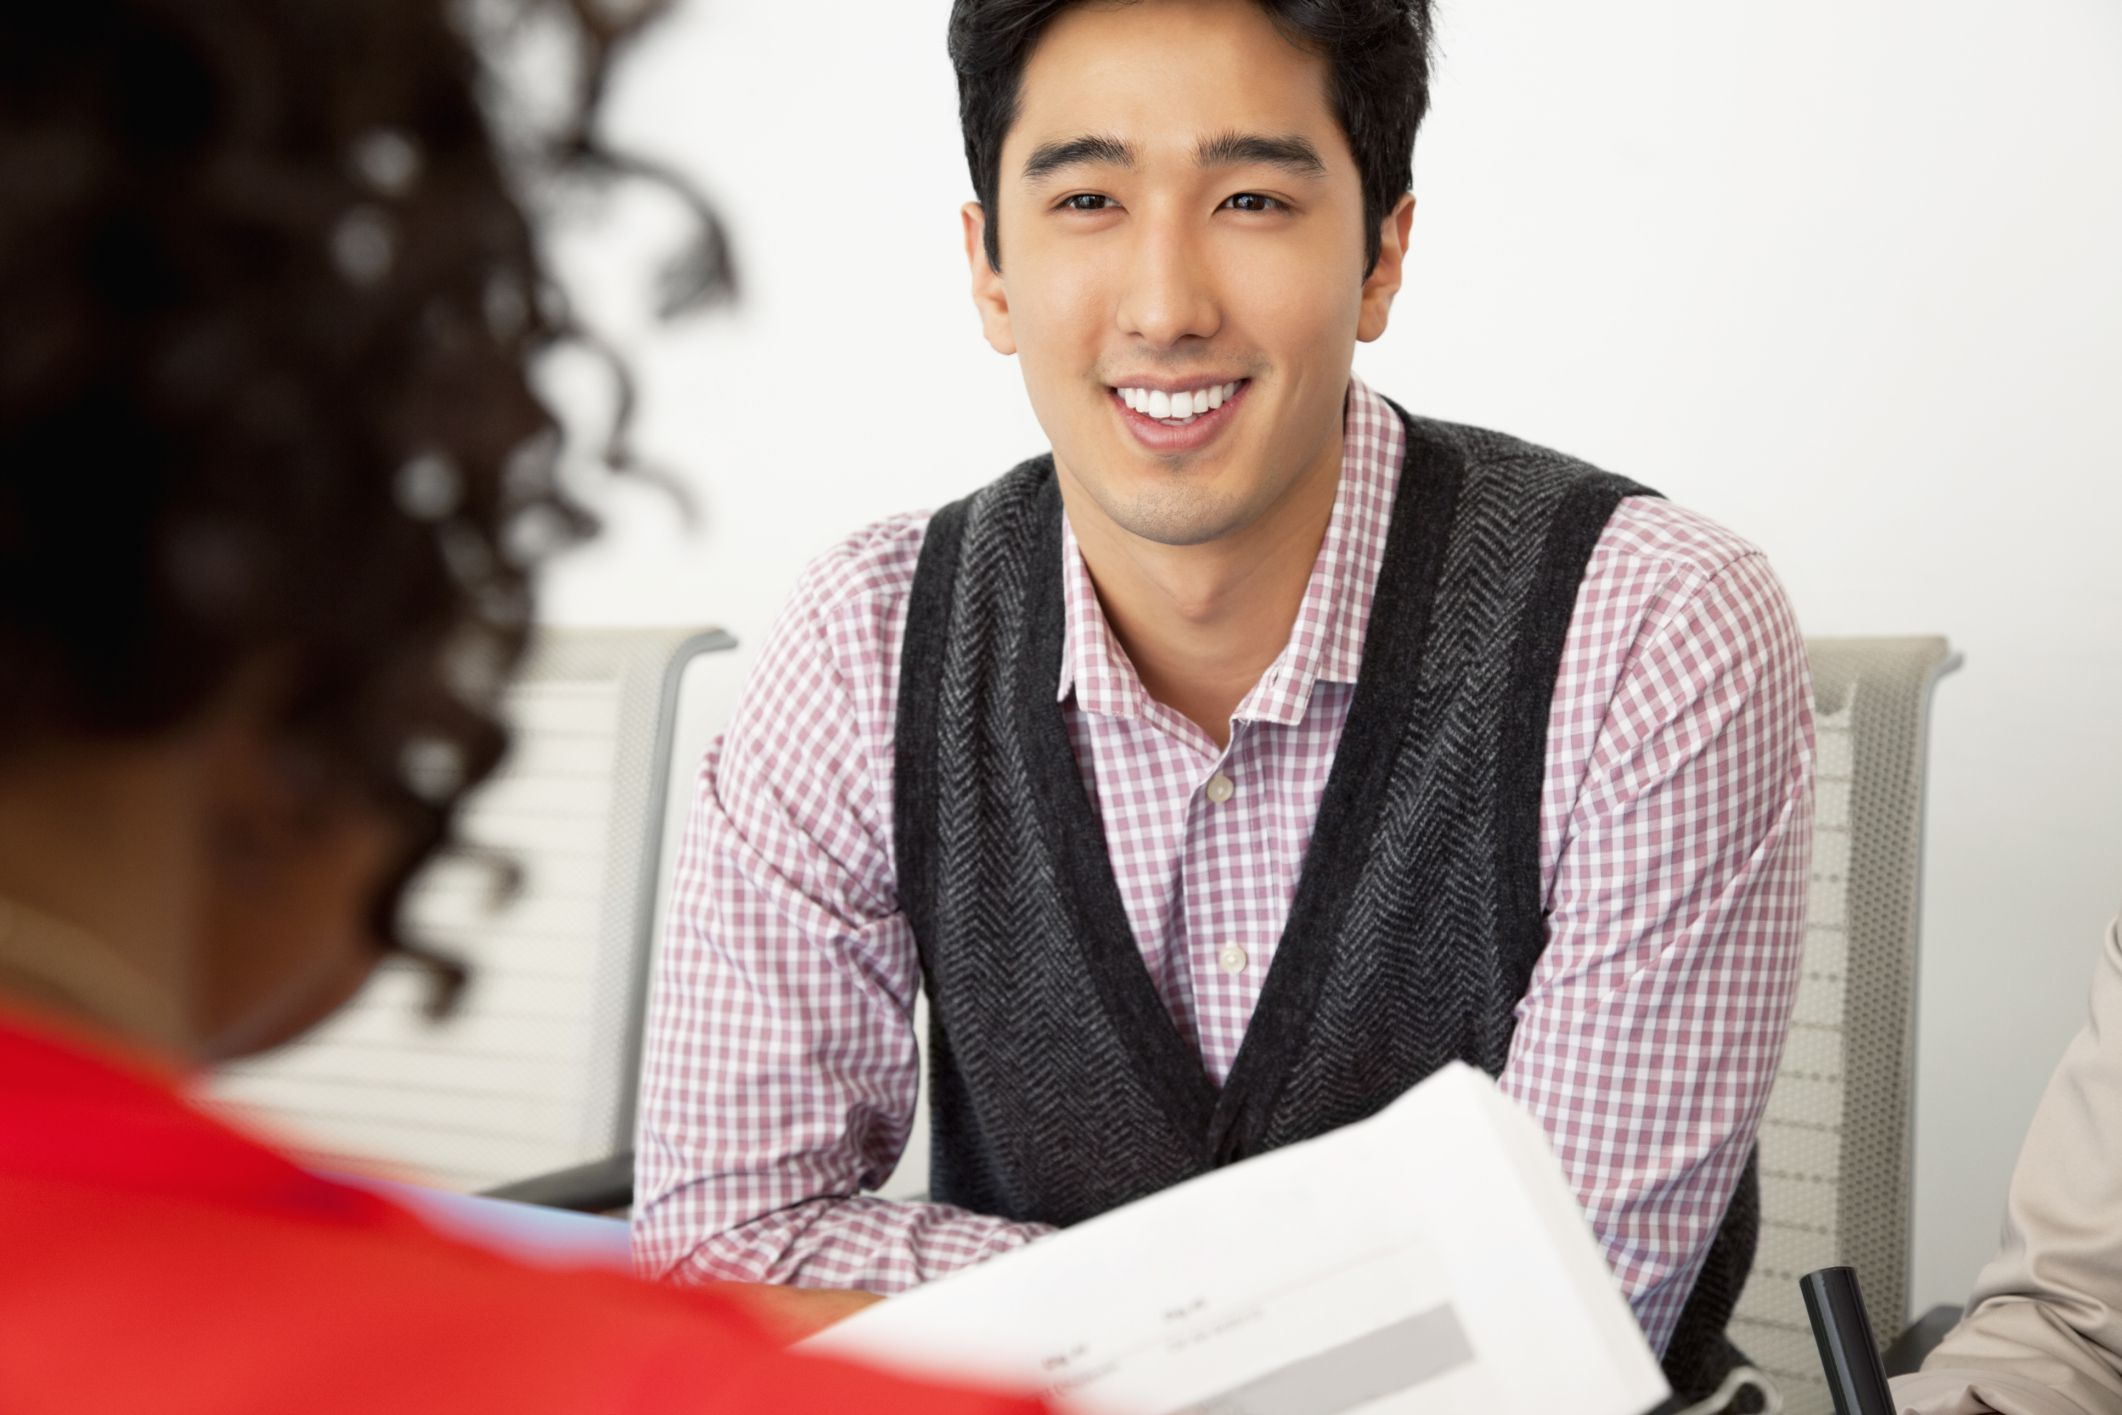 how to answer interview questions about weaknesses